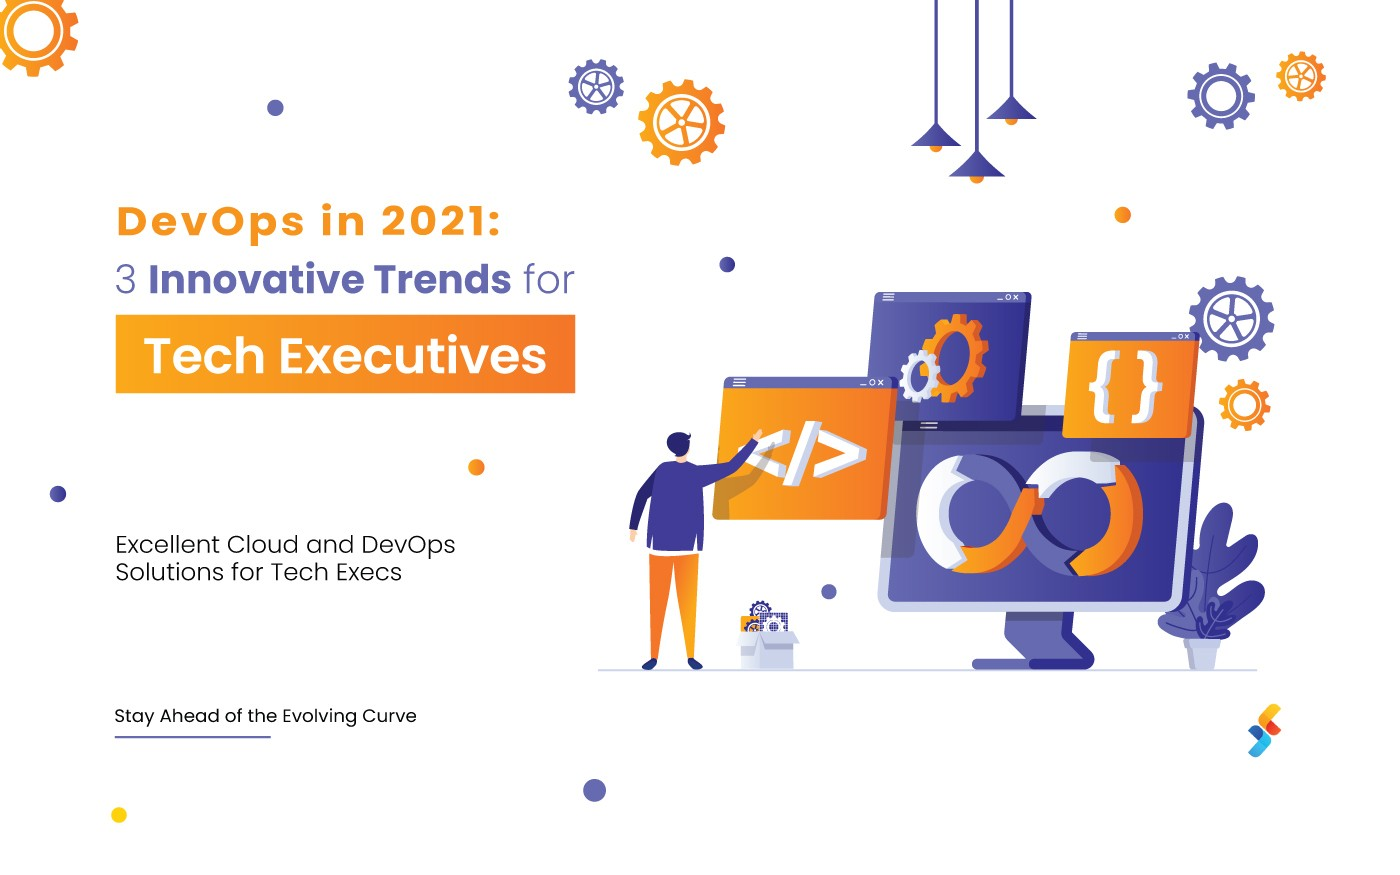 DevOps in 2021: 3 Innovative Trends for Tech Executives